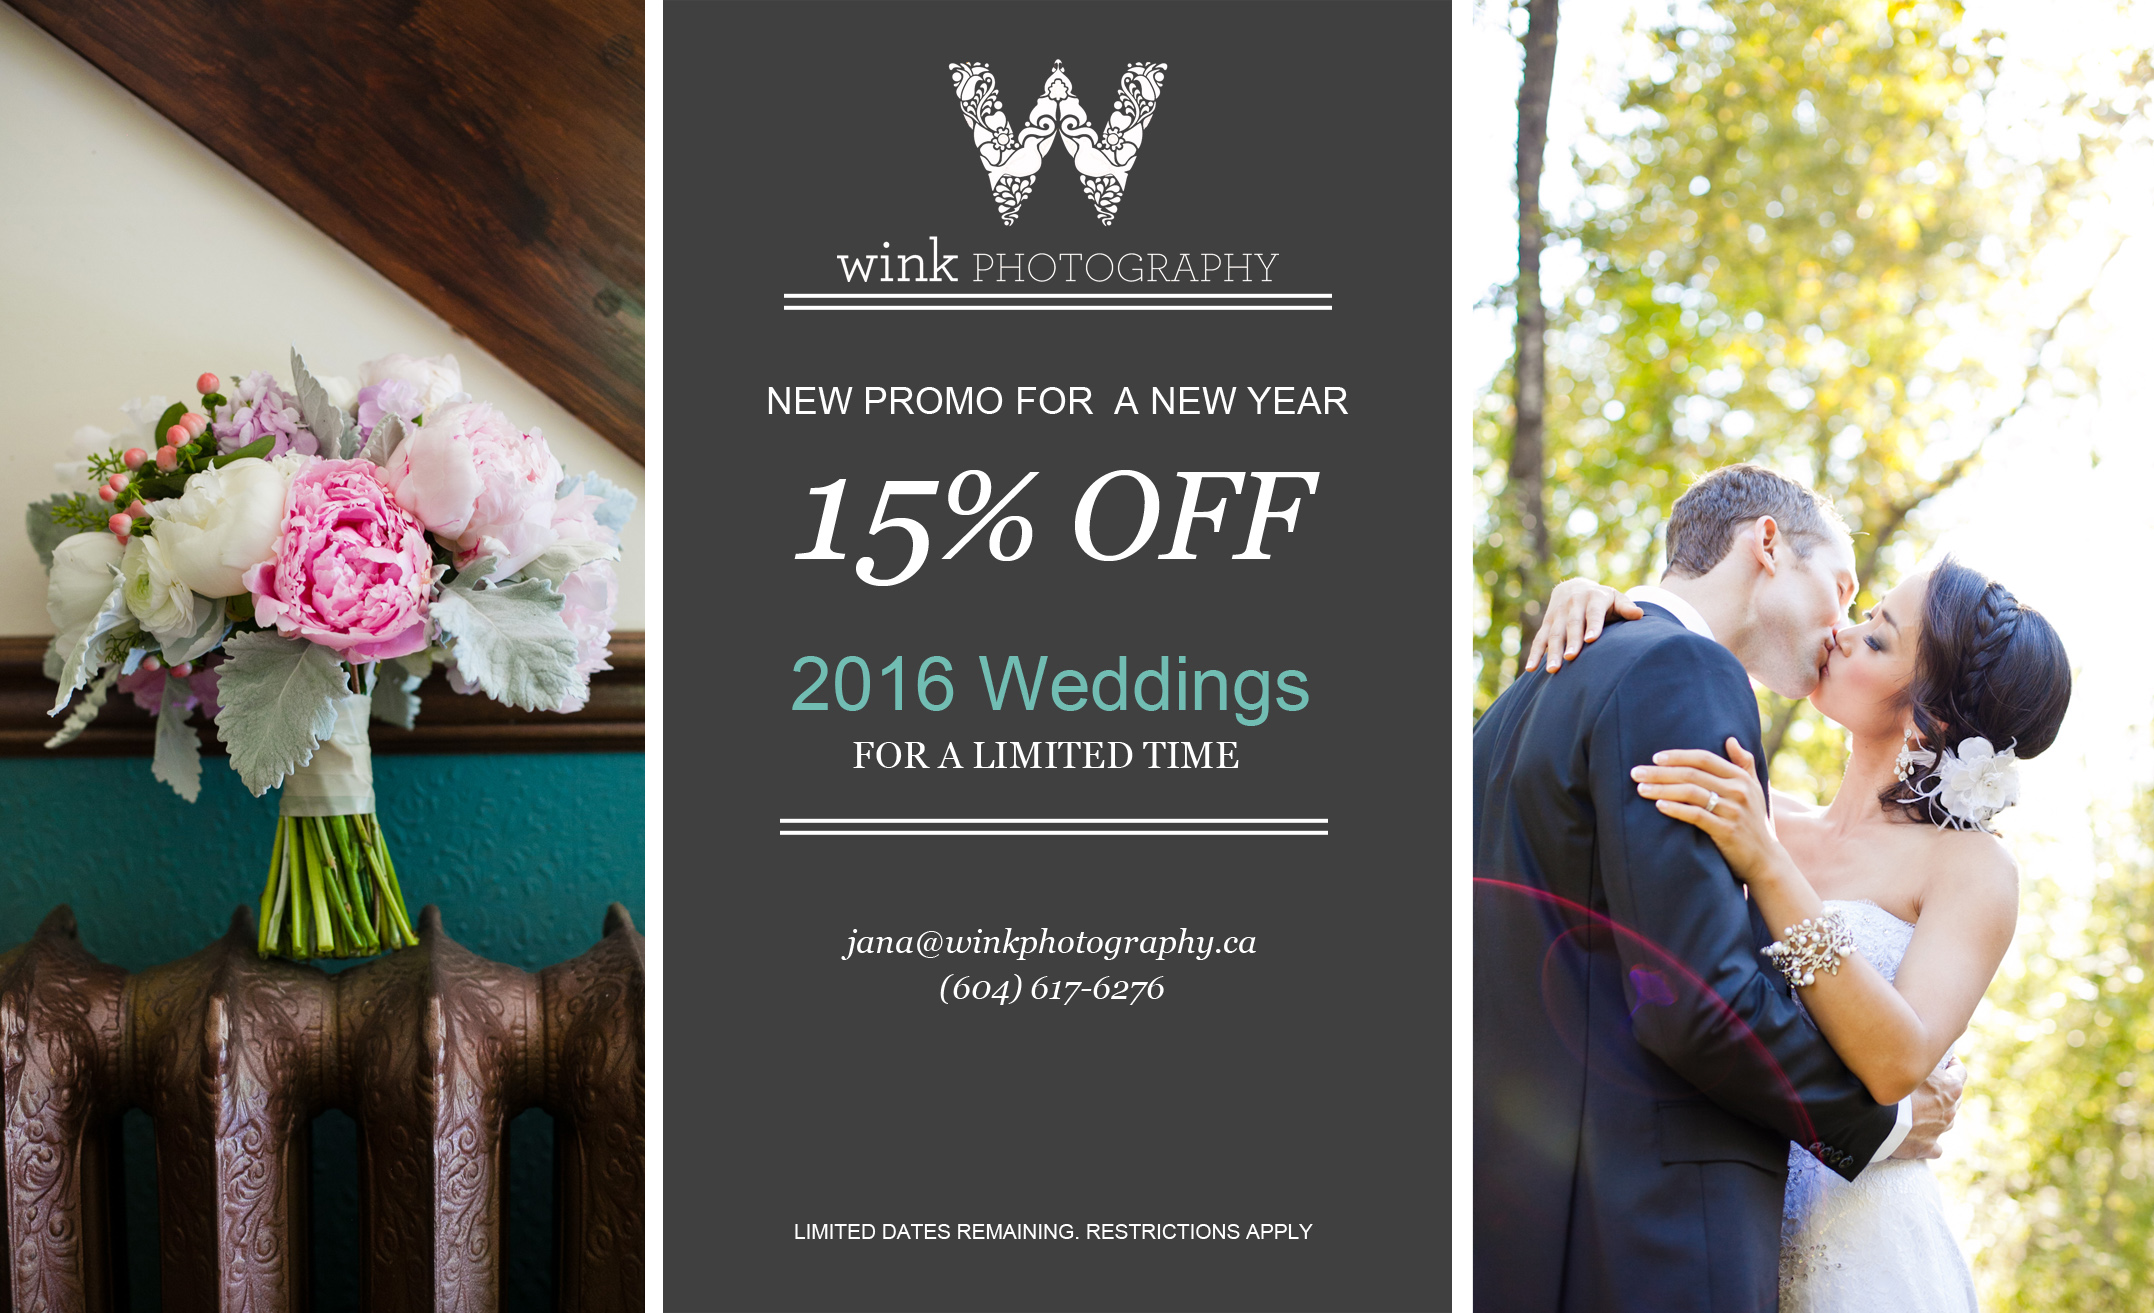 Vancouver Wedding Photography Promo 2016 by Wink Photography